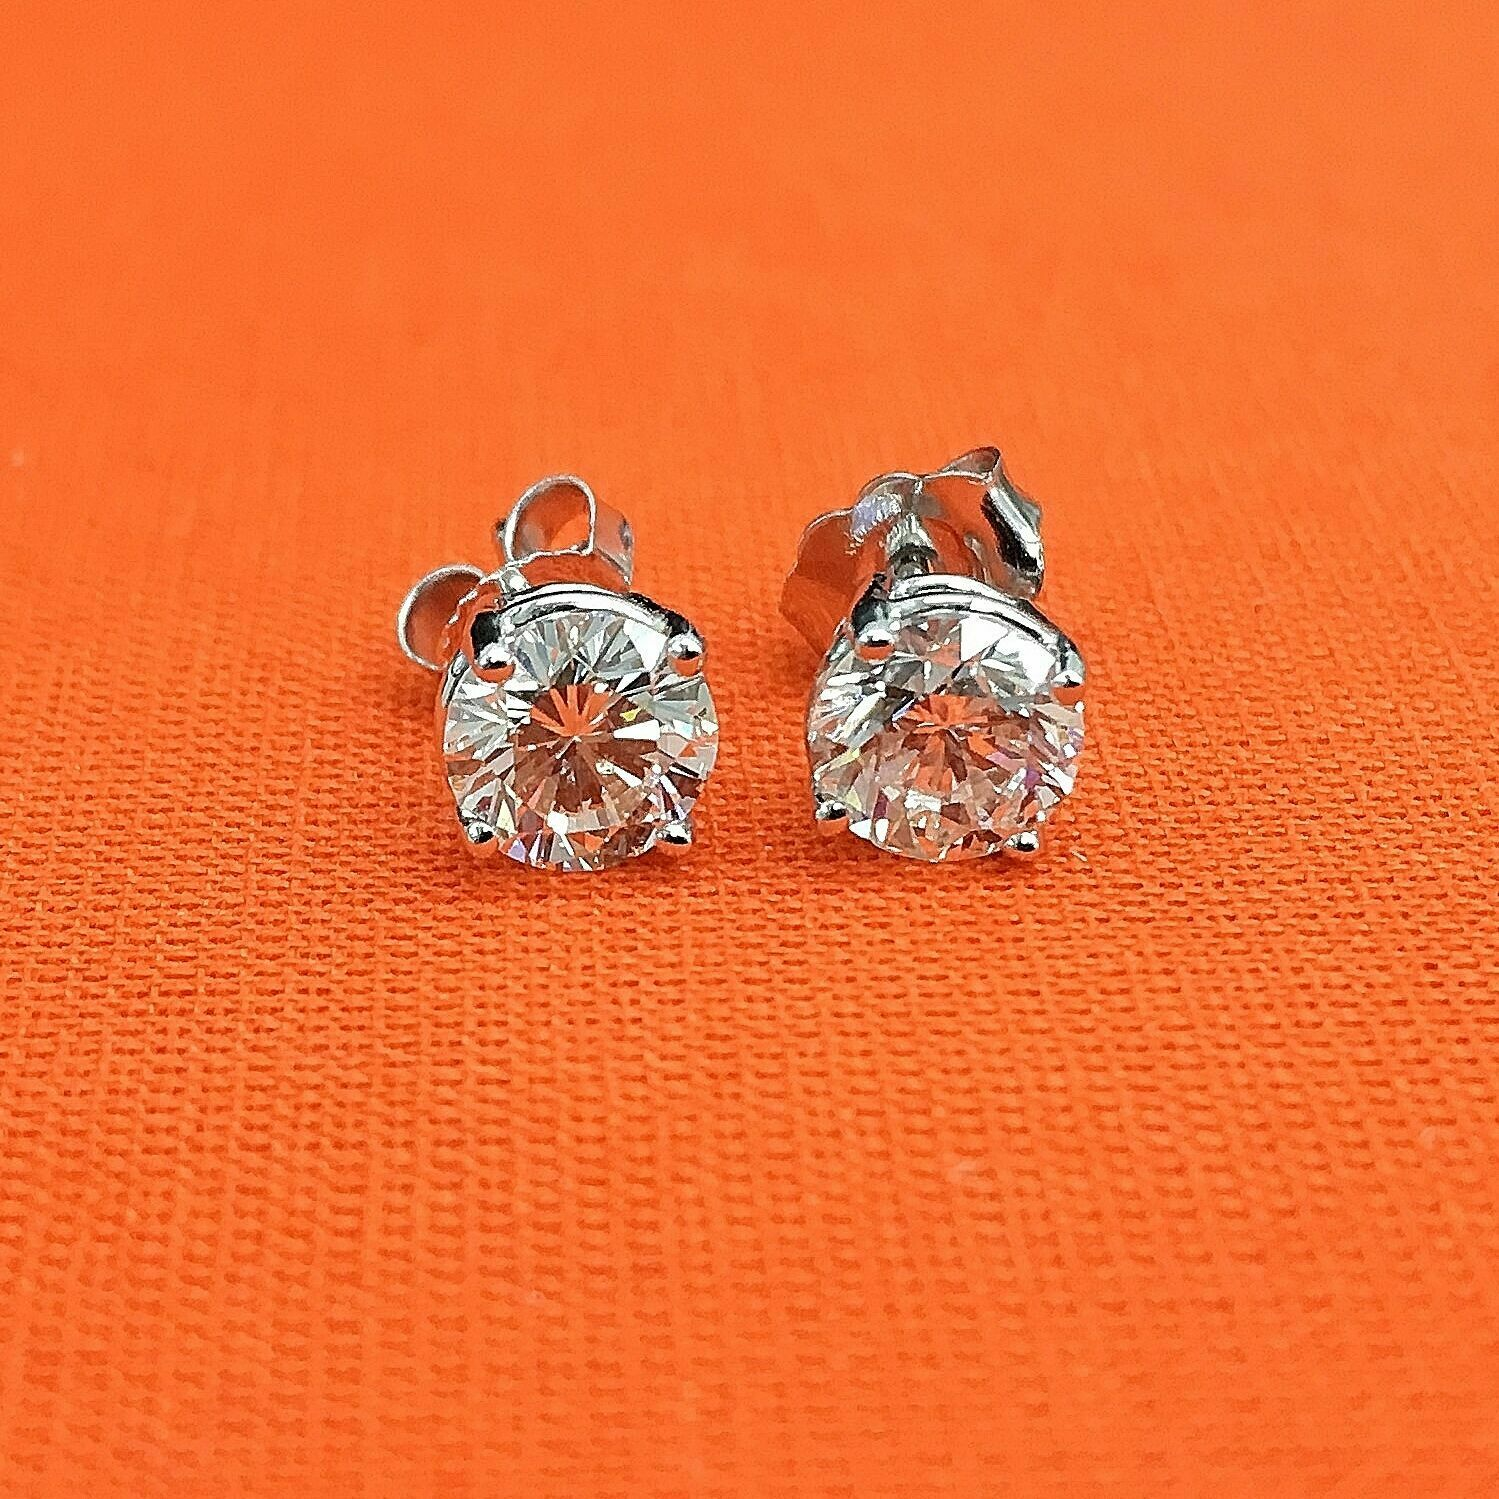 1.41 Carats t.w. Diamond Stud Earrings 14K Gold EGL USA G-H SI Diamonds